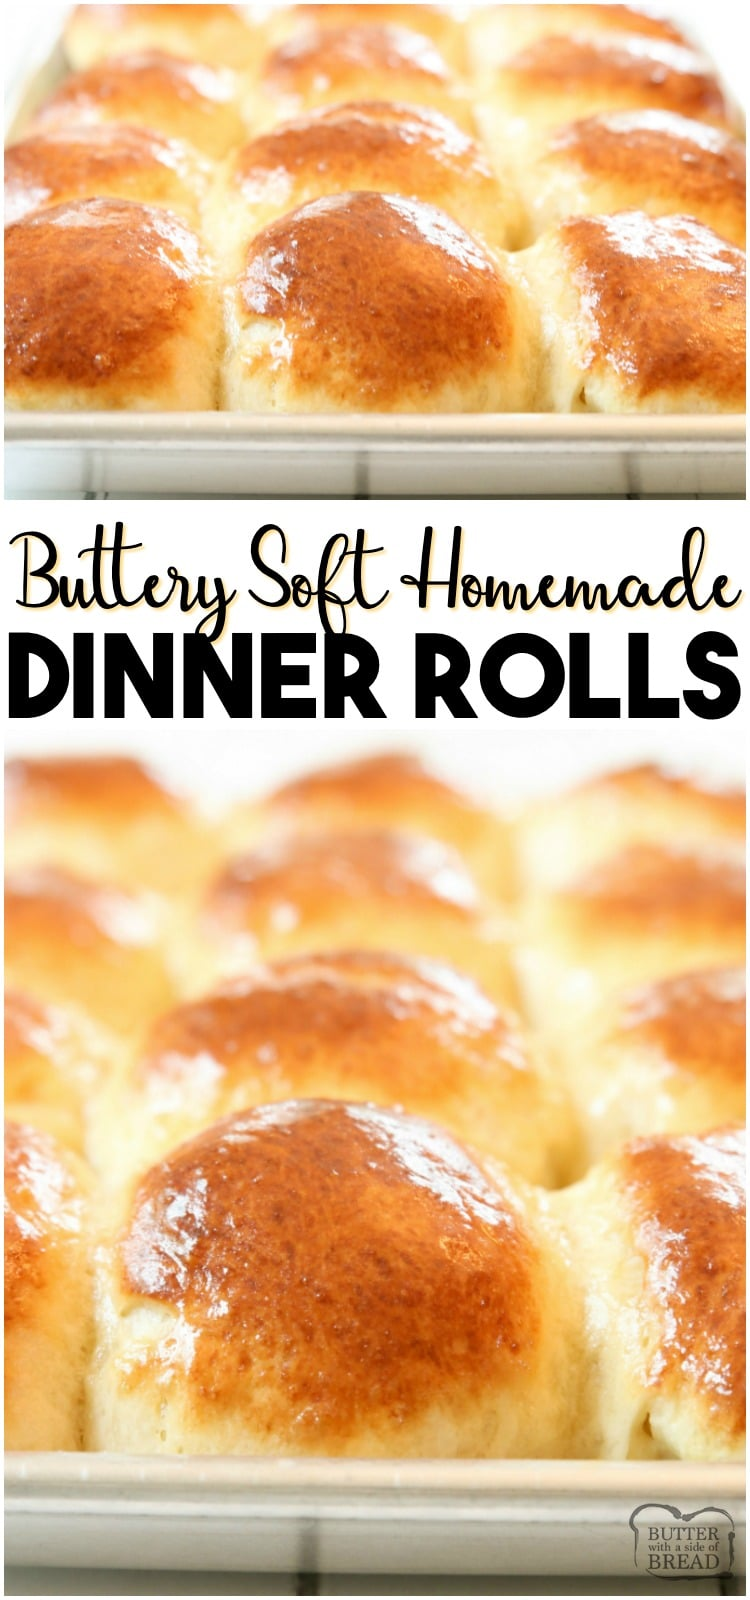 Easy Dinner Roll recipe perfect for procrastinators! Done in just over an hour, these buttery soft dinner rolls are the perfect addition to dinner. #rolls #dinner #bread #baking #homemade #yeast #recipe from BUTTER WITH A SIDE OF BREAD